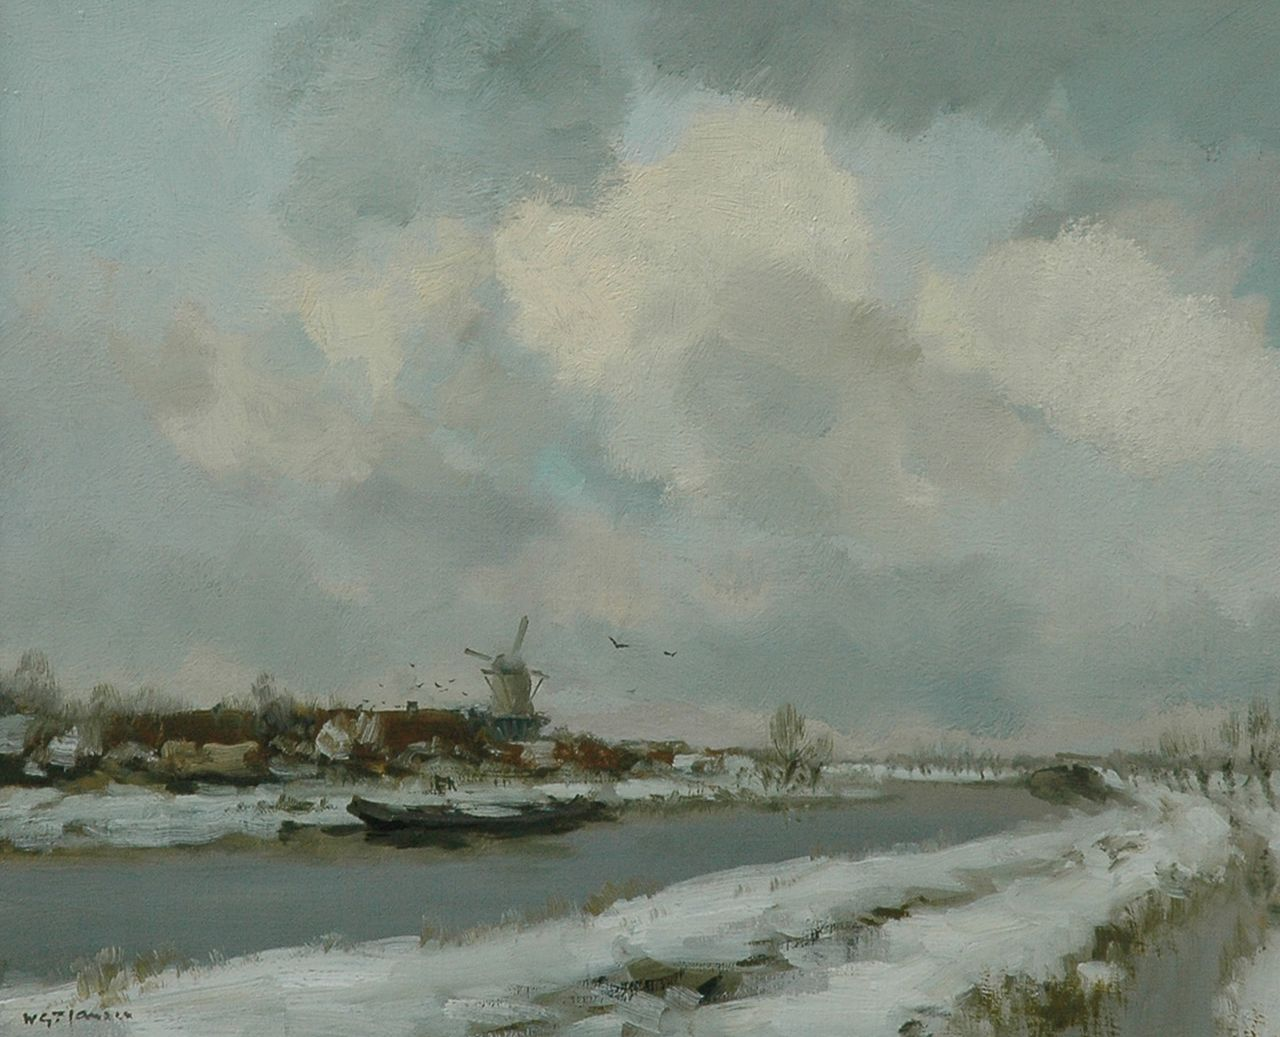 Jansen W.G.F.  | 'Willem' George Frederik Jansen, A polder landscape in winter, oil on canvas 50.0 x 60.2 cm, signed l.l.